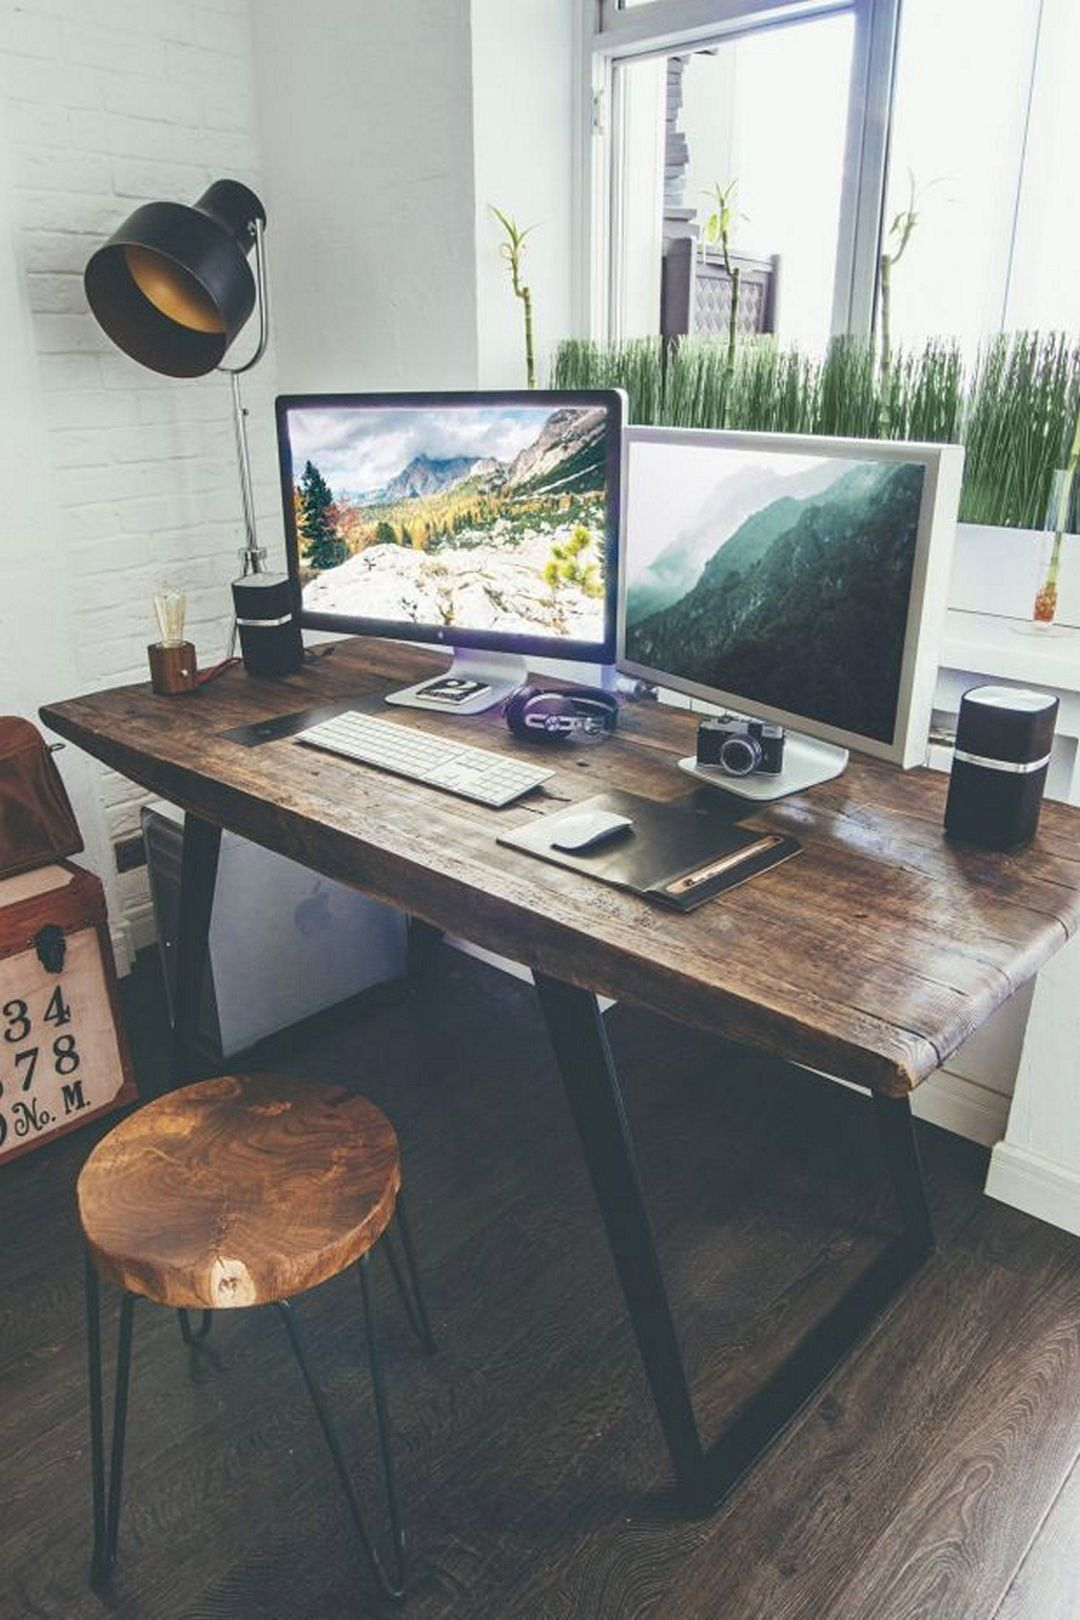 Create A Home Office With A Desk That Will Suit Your Work Style